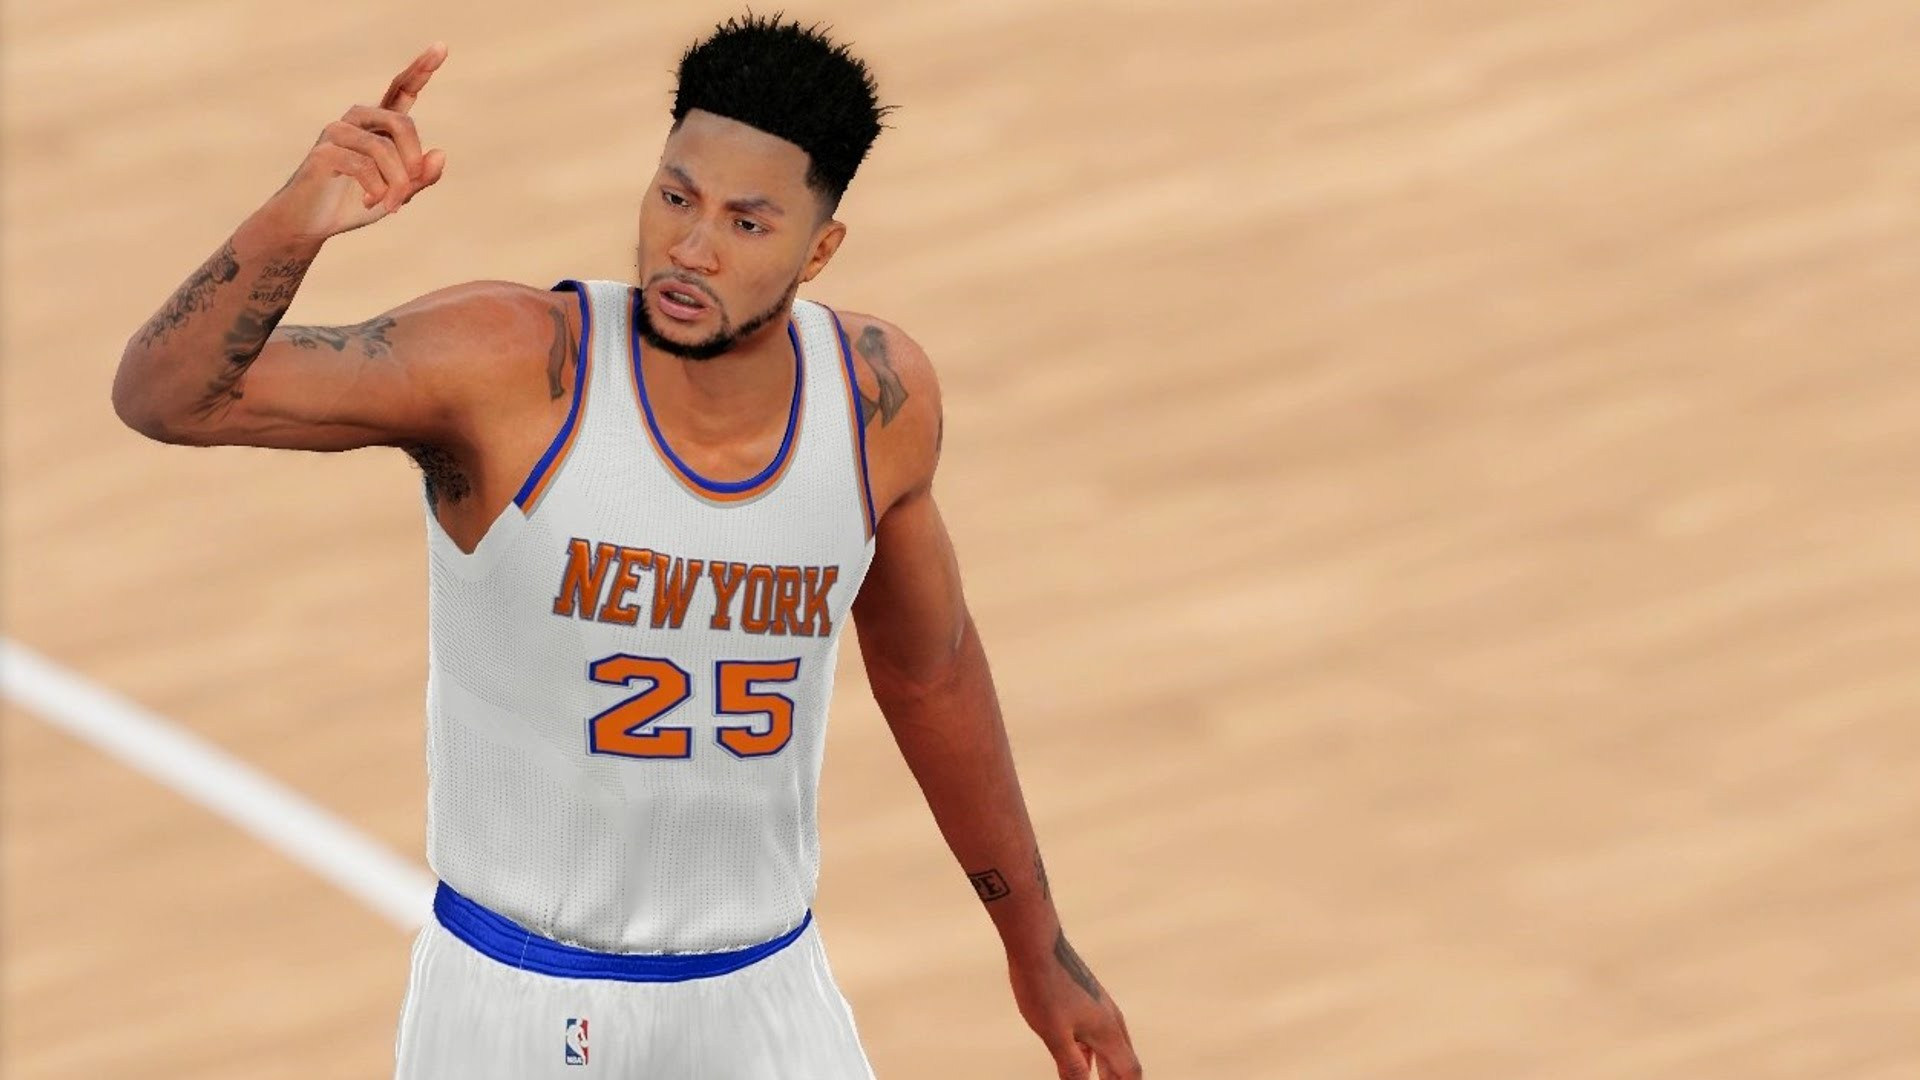 1920x1080 Derrick Rose Traded to the New York Knicks | NBA 2k16 - Knicks vs Cavaliers  (1080p 60fps) - YouTube